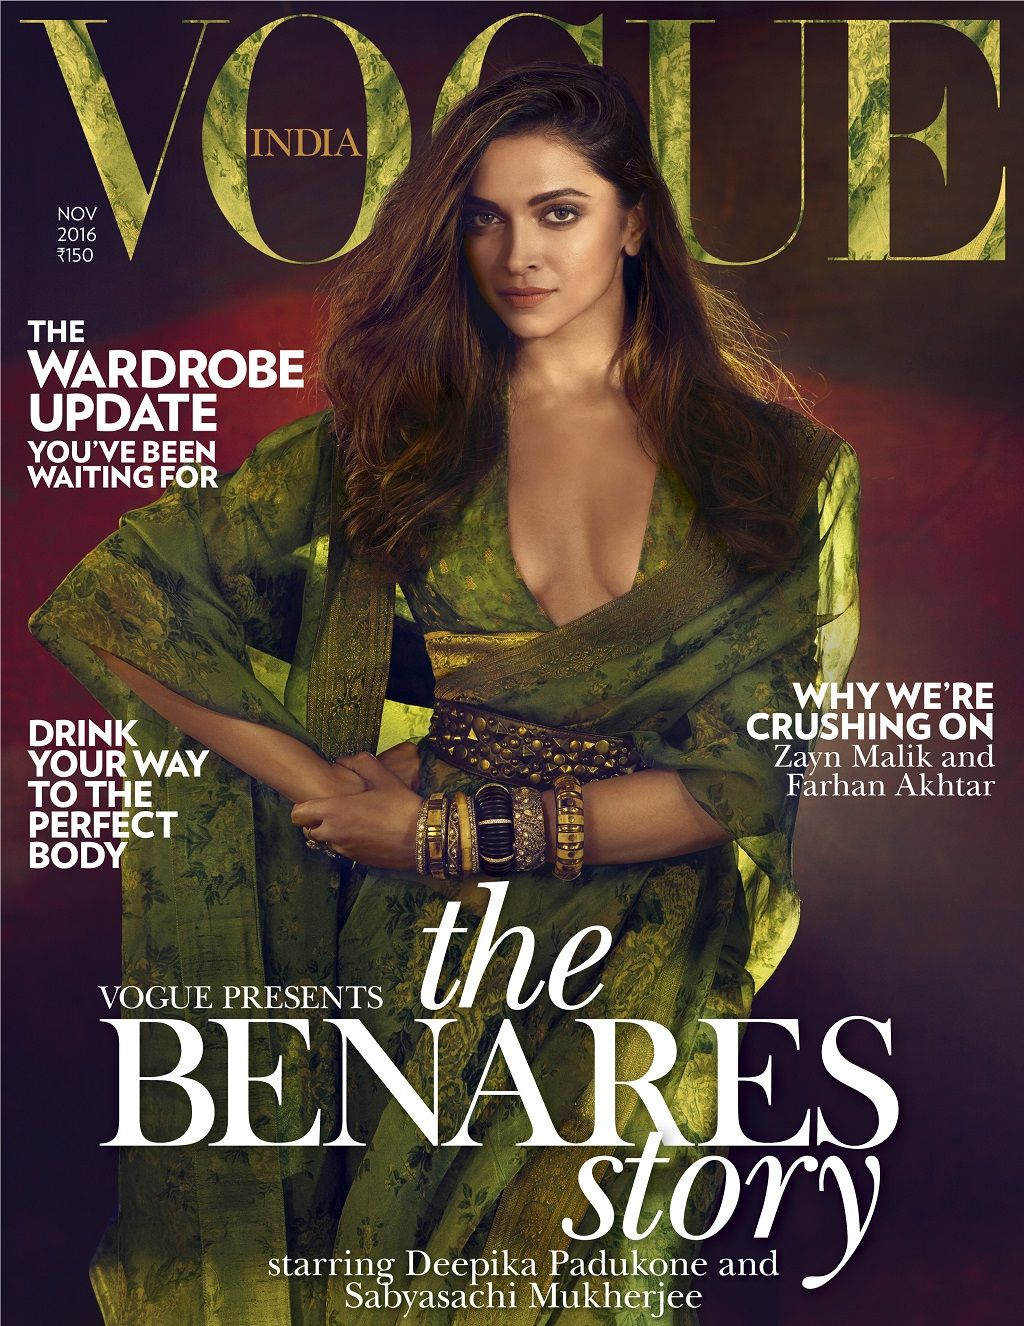 List of most popular, top 10 fashion magazines in India for Men & Women